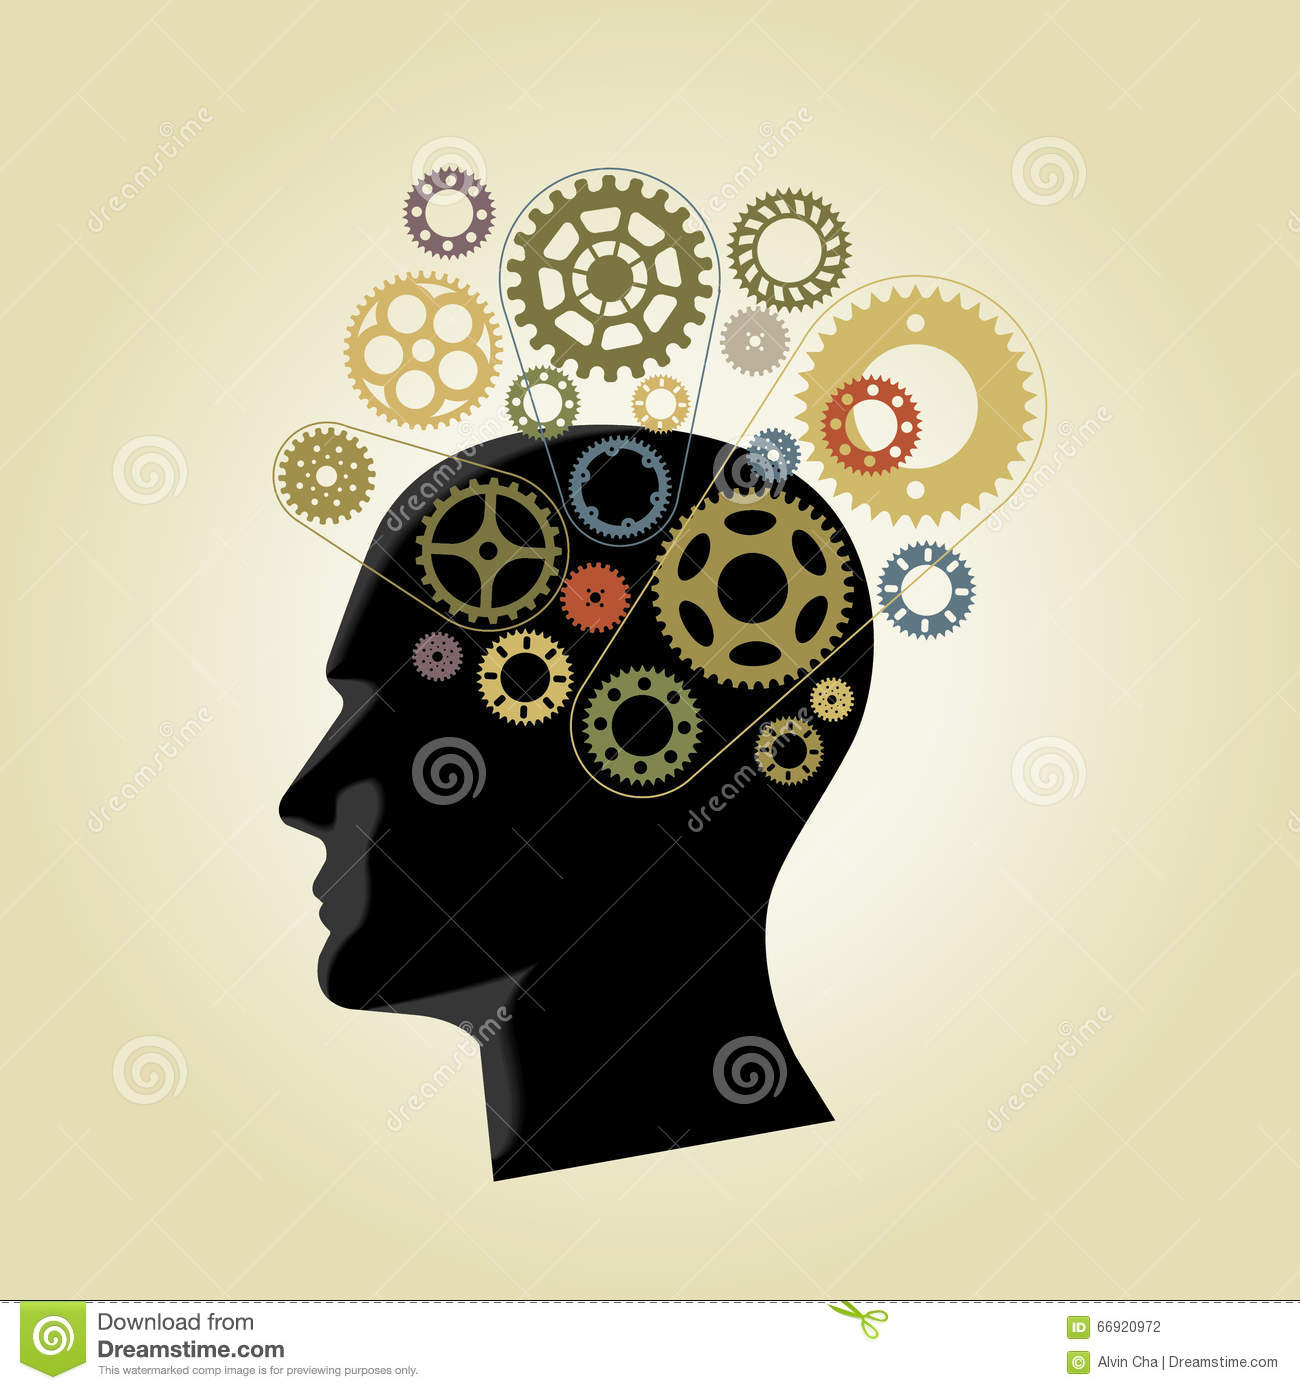 Silhouette of head with wheel gears in mind and sphere of hands ...